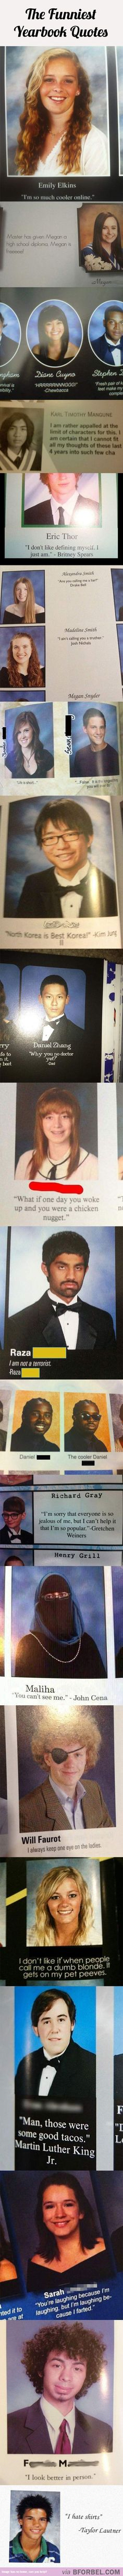 20 Of The Funniest Yearbook Quotes… Some of these had me laughing quite hard :)